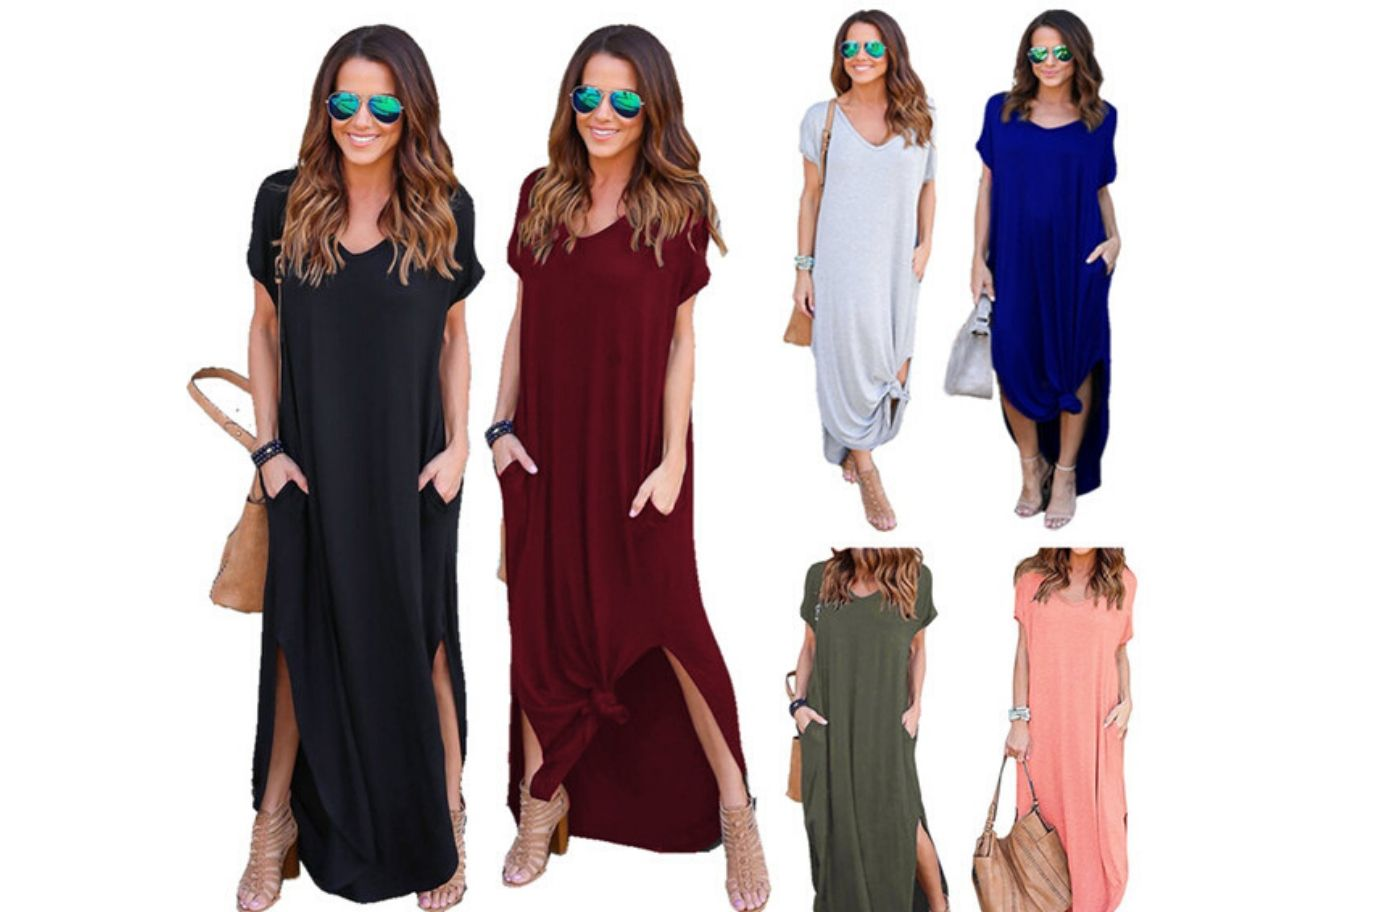 Some Best Options for Stylish Maxi collection for Short Women